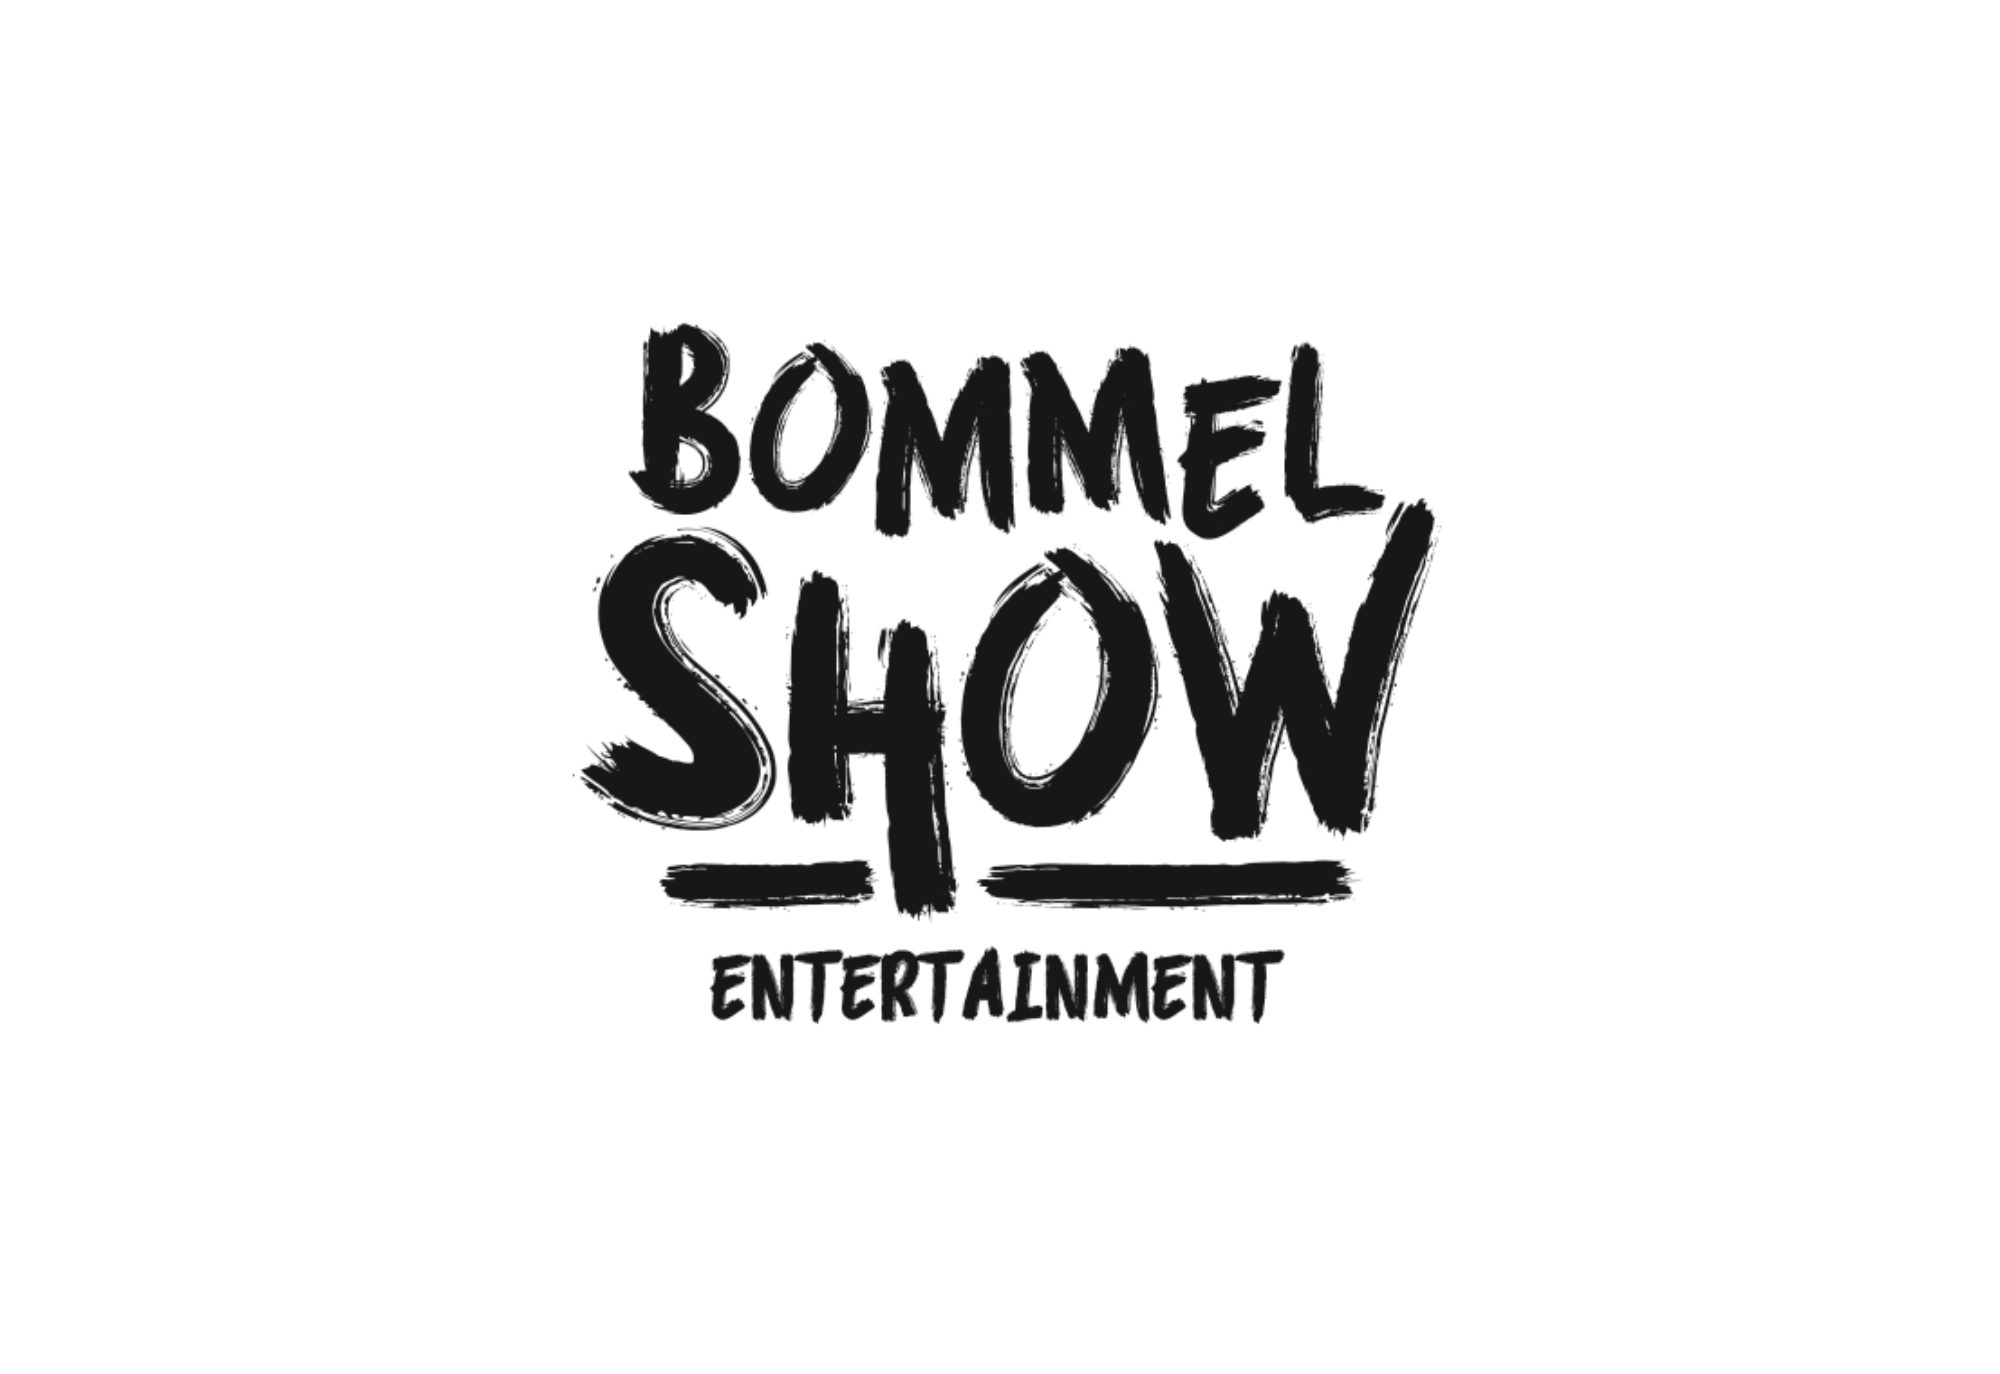 Bommel Show Entertainment Podcast